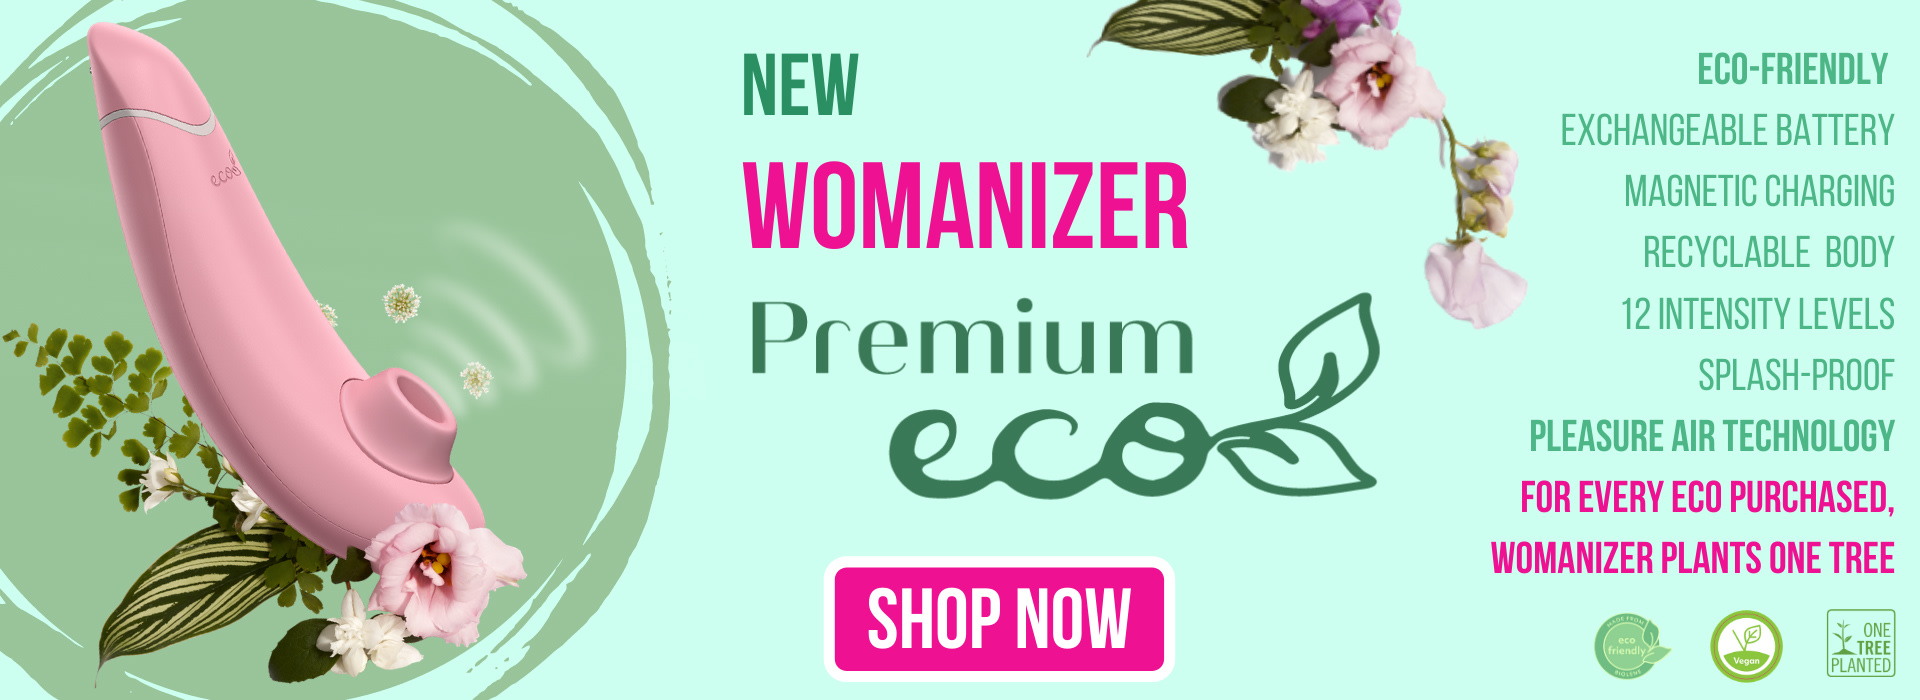 Womanizer Premium Eco now available at Babeland.com!